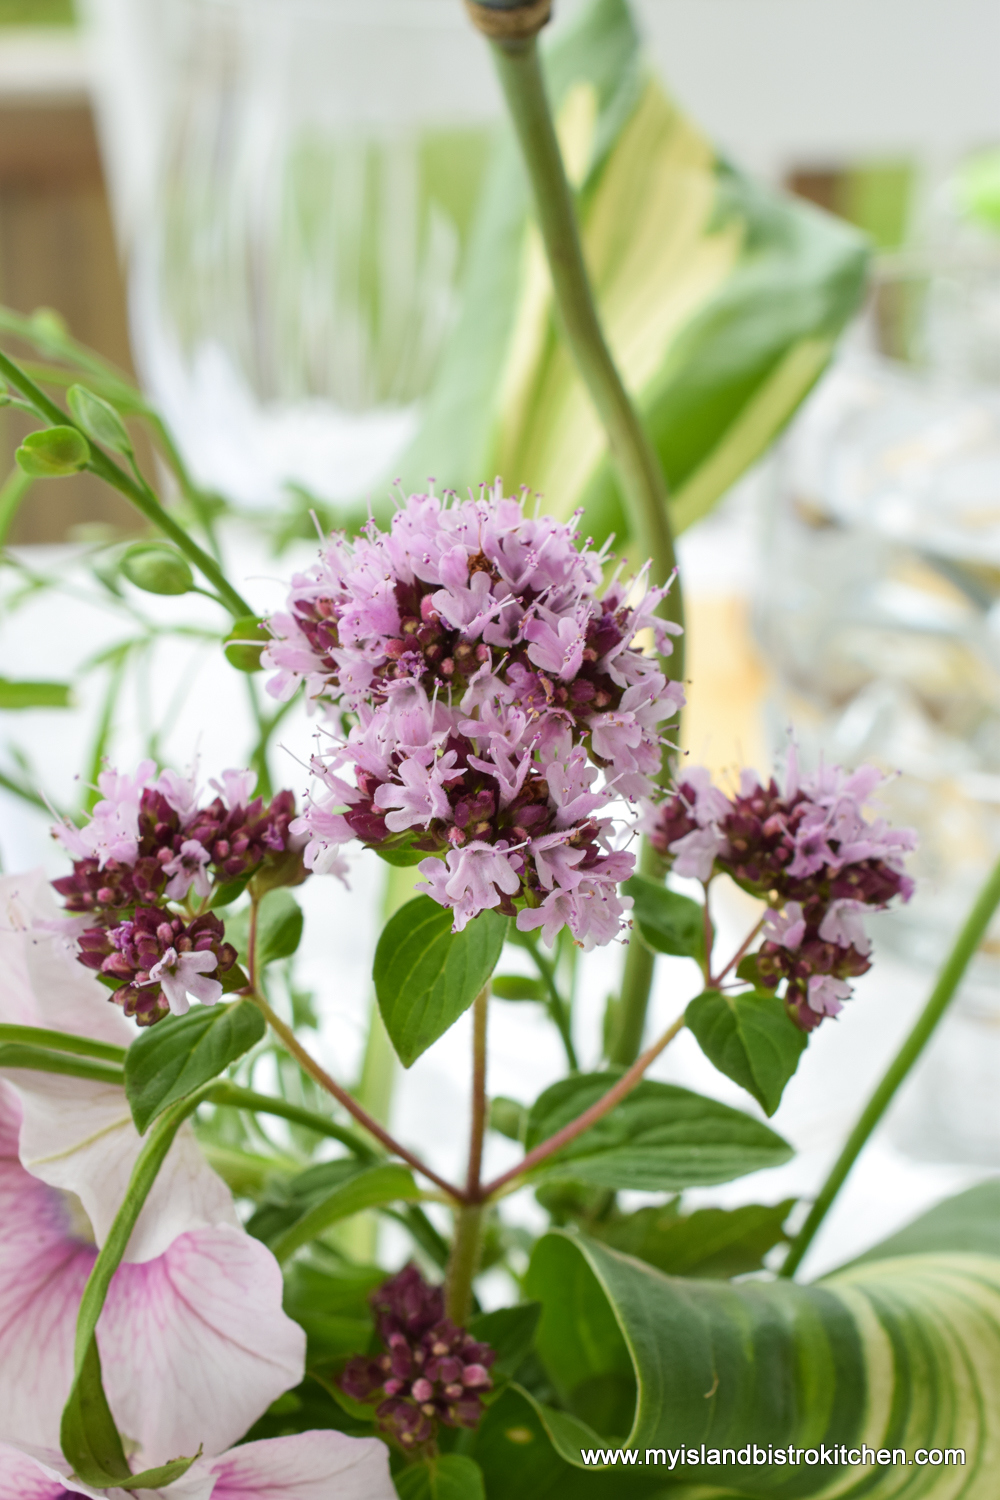 Fresh herbs, such as oregano, are great in casual floral arrangements